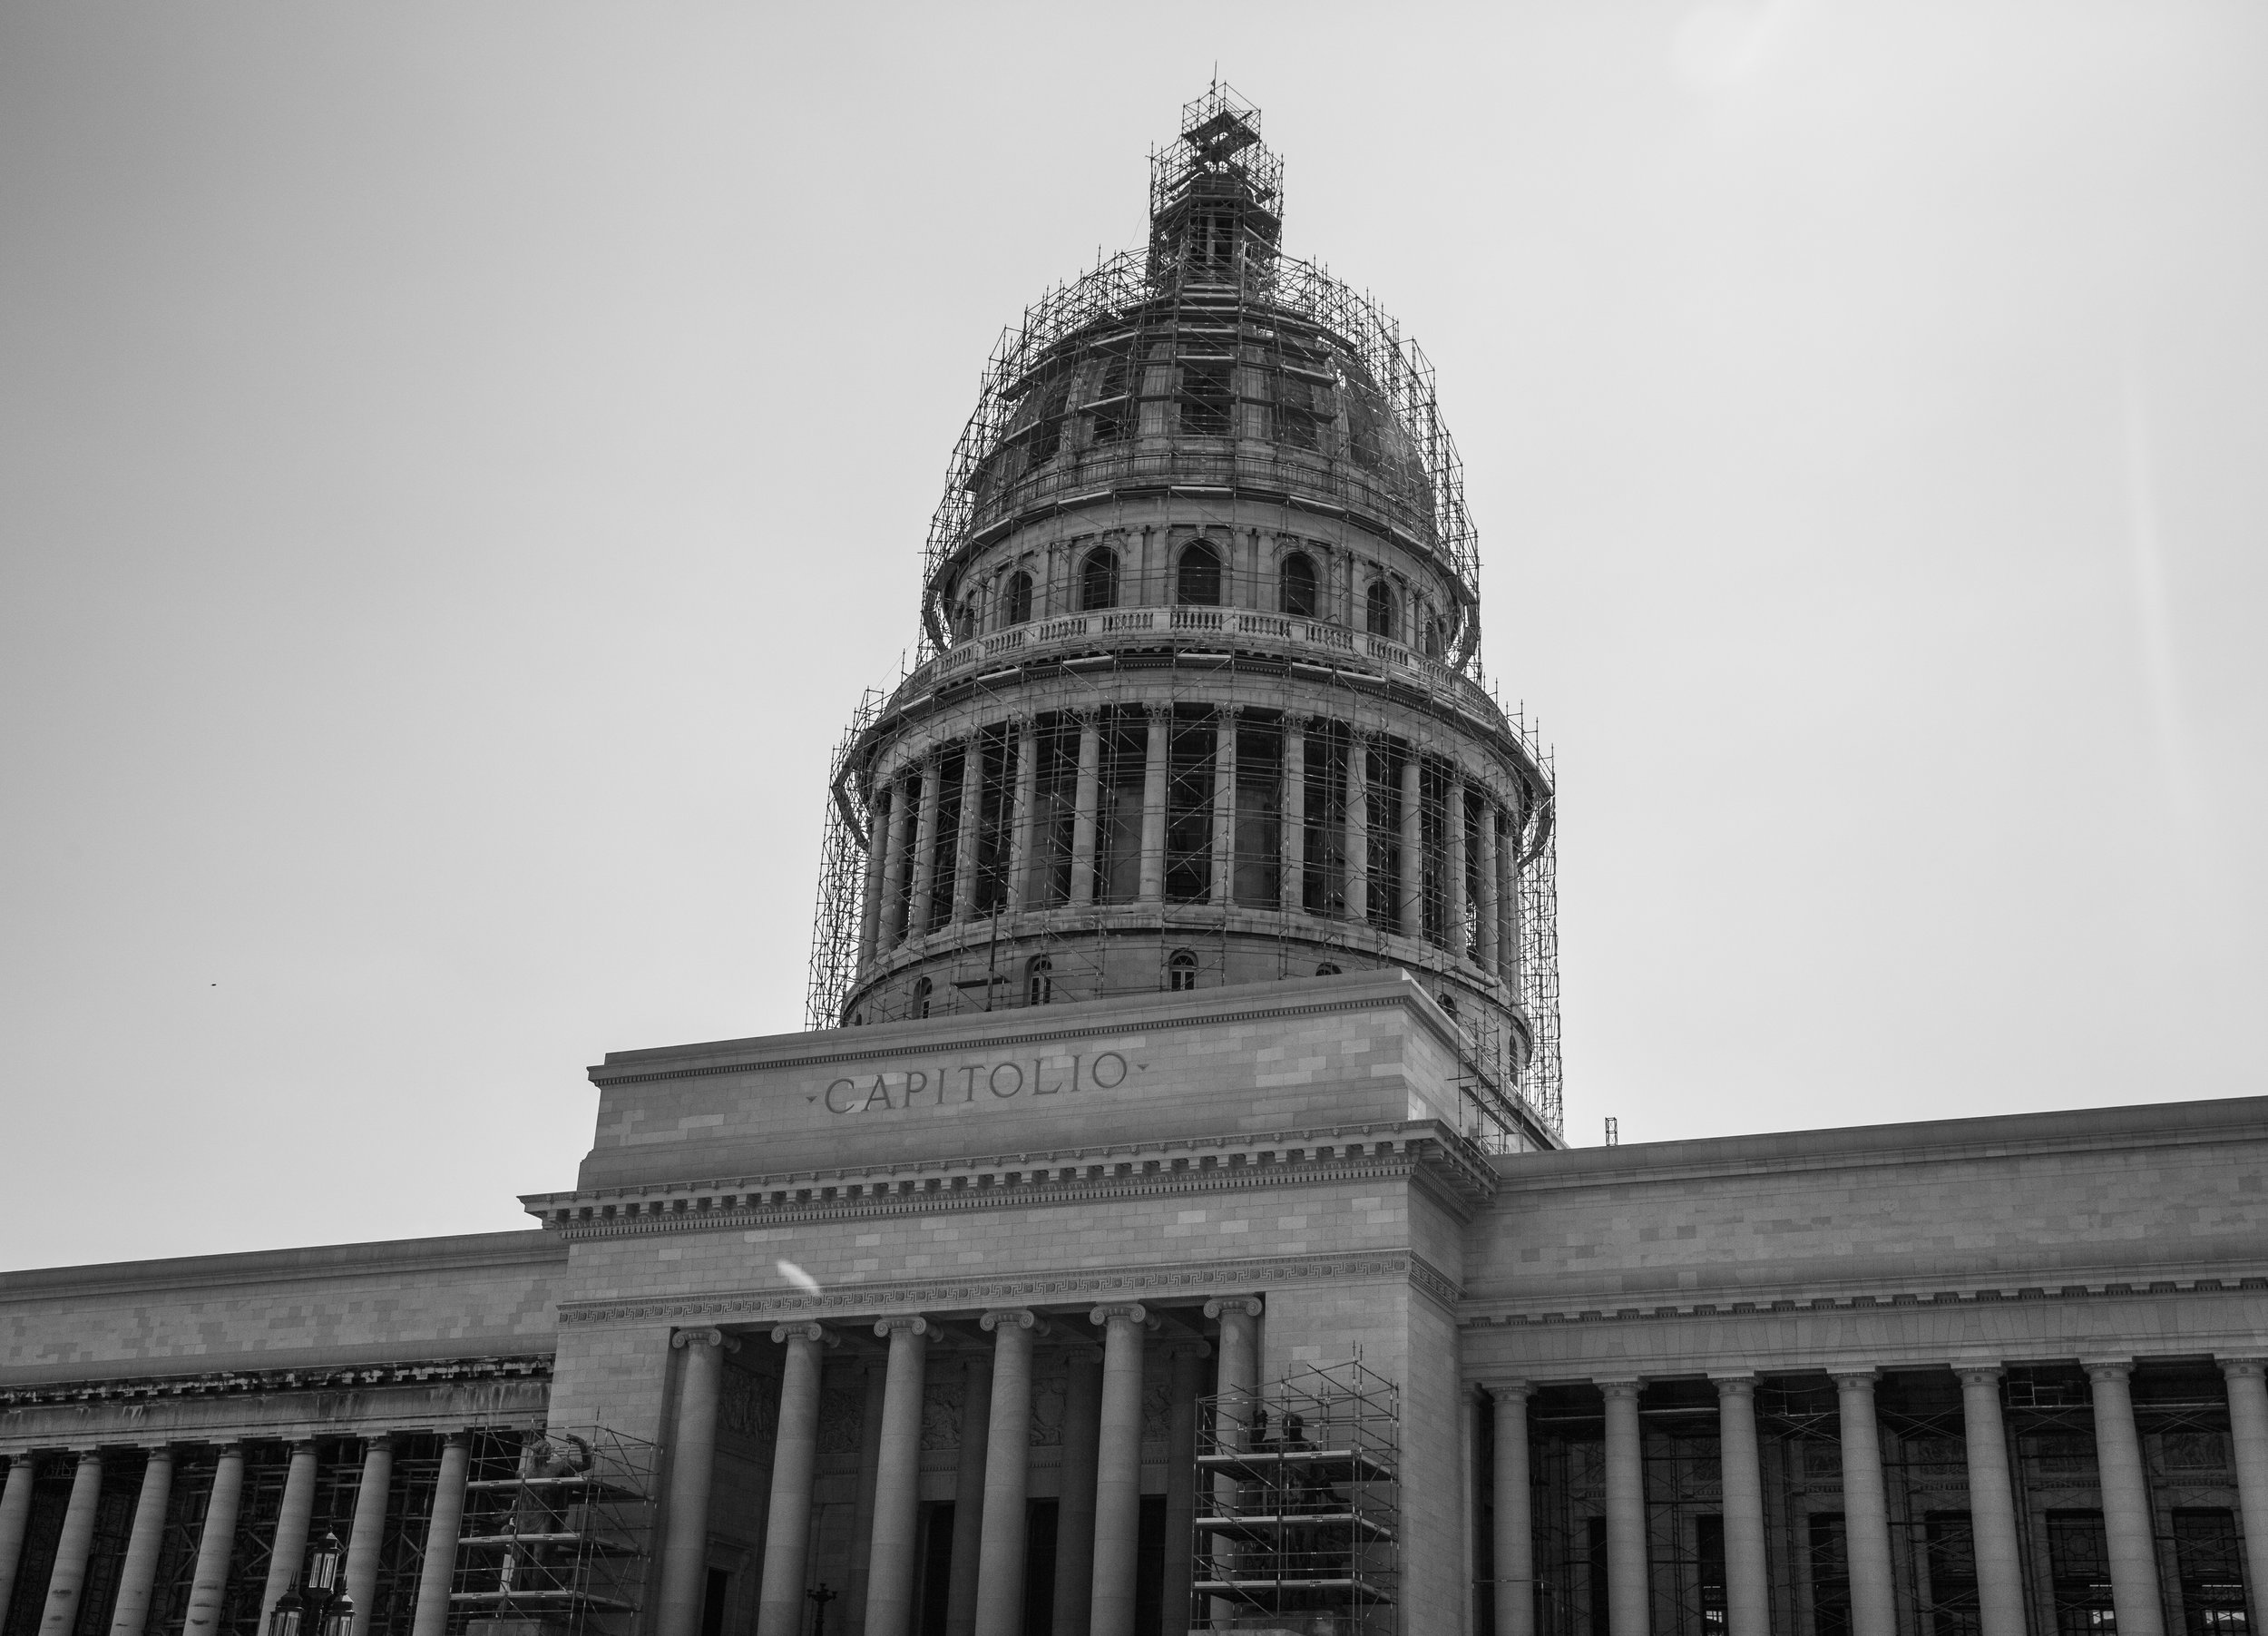 The capitol currently under renovation. notice the clean walls and pillars on the right hand side, with the left hand side next for its close up.